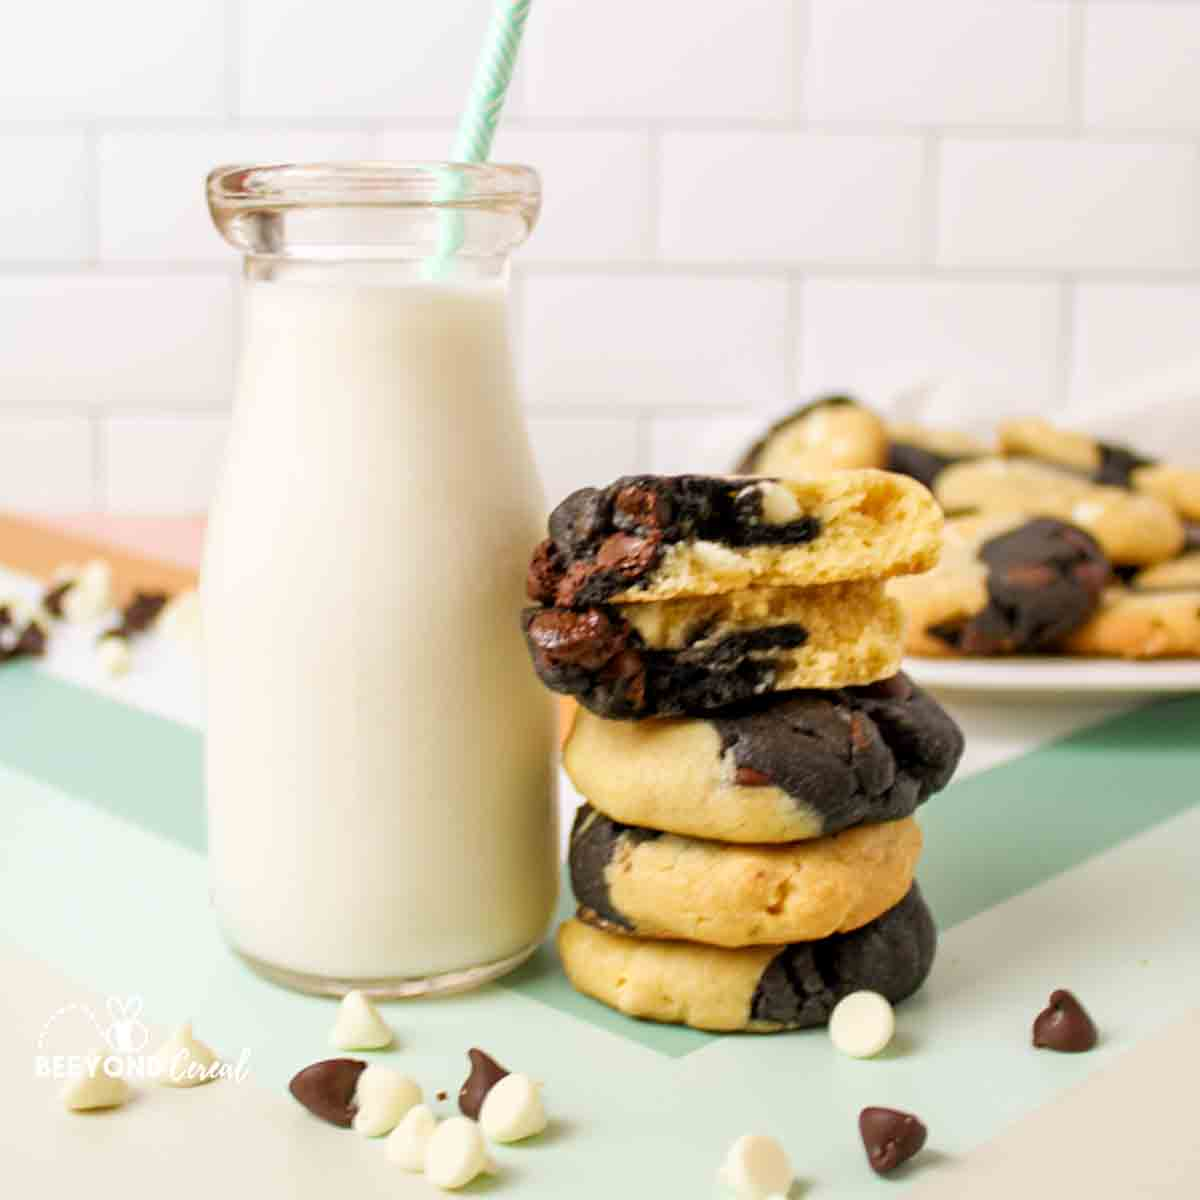 a glass of milk next to a stack of marbled chocolate chip cookies and scattered chocolate chips